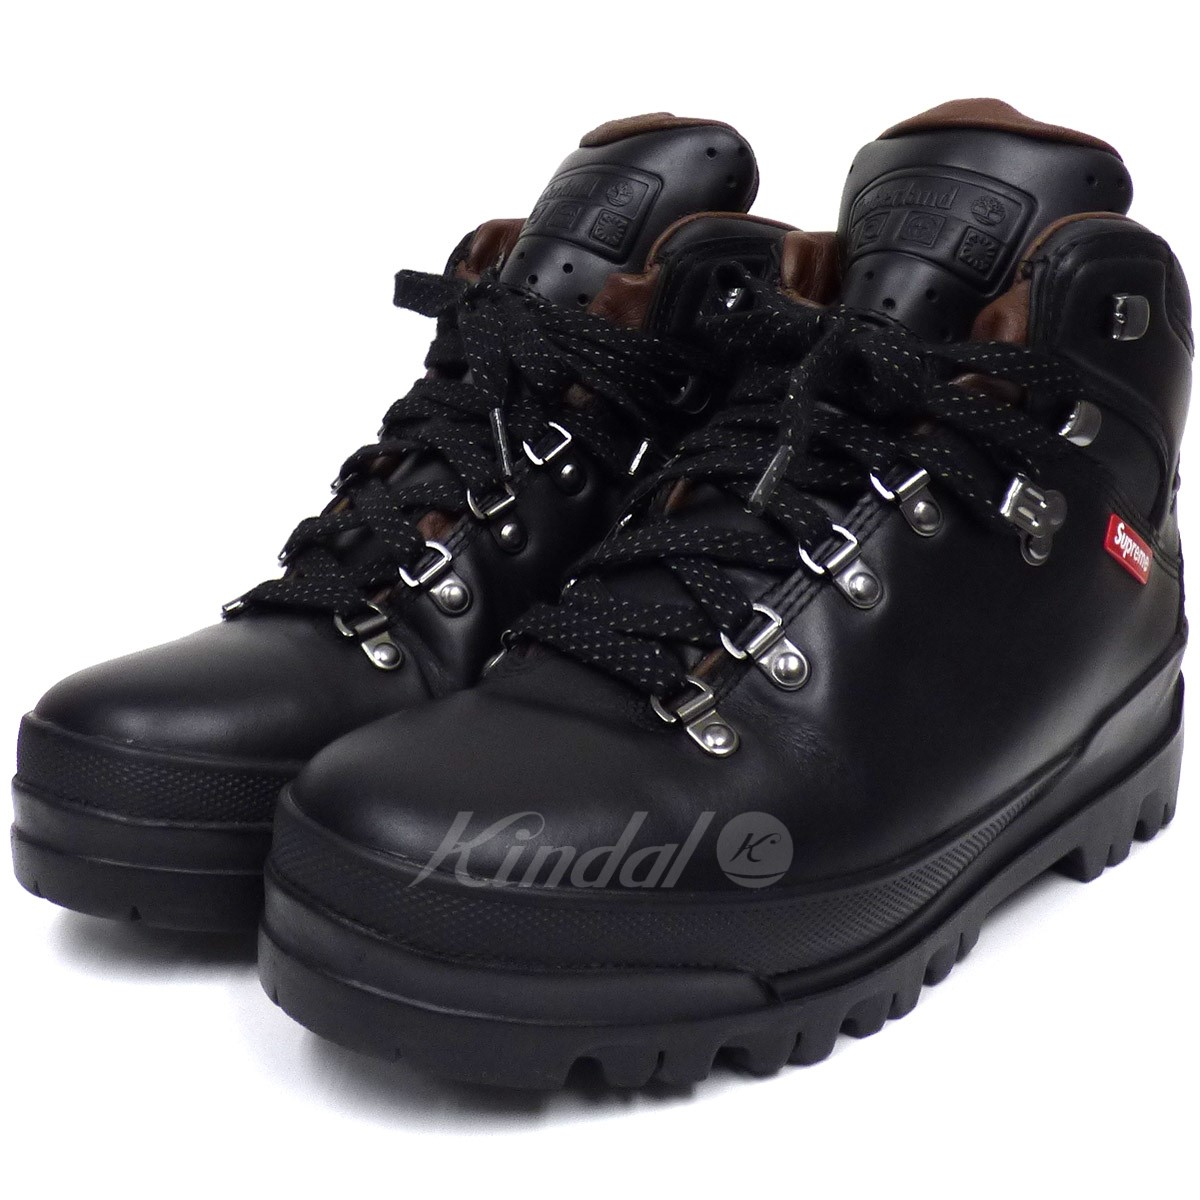 【中古】SUPREME×TIMBERLAND 18AW World Hiker Front Country Bootカントリーブーツ 【送料無料】 【006469】 【KIND1641】